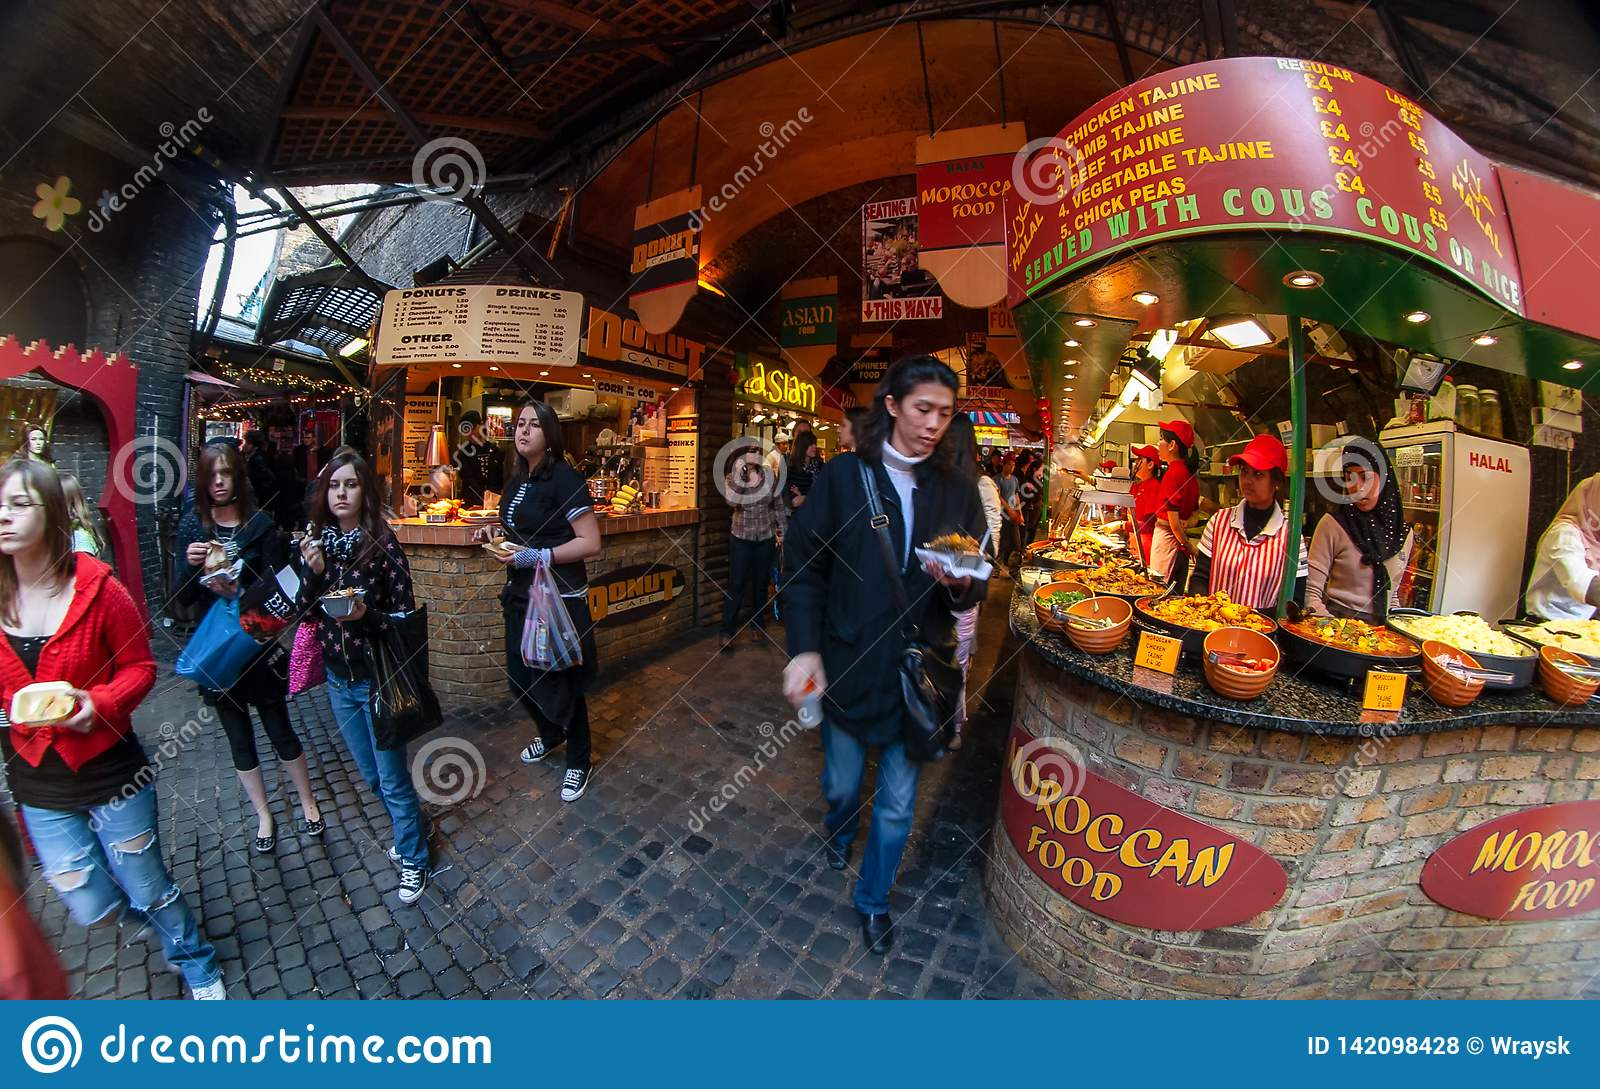 London, United Kingdom - March 31, 2007: Unknown shoppers eating street food while walking at Camden Lock, famous market